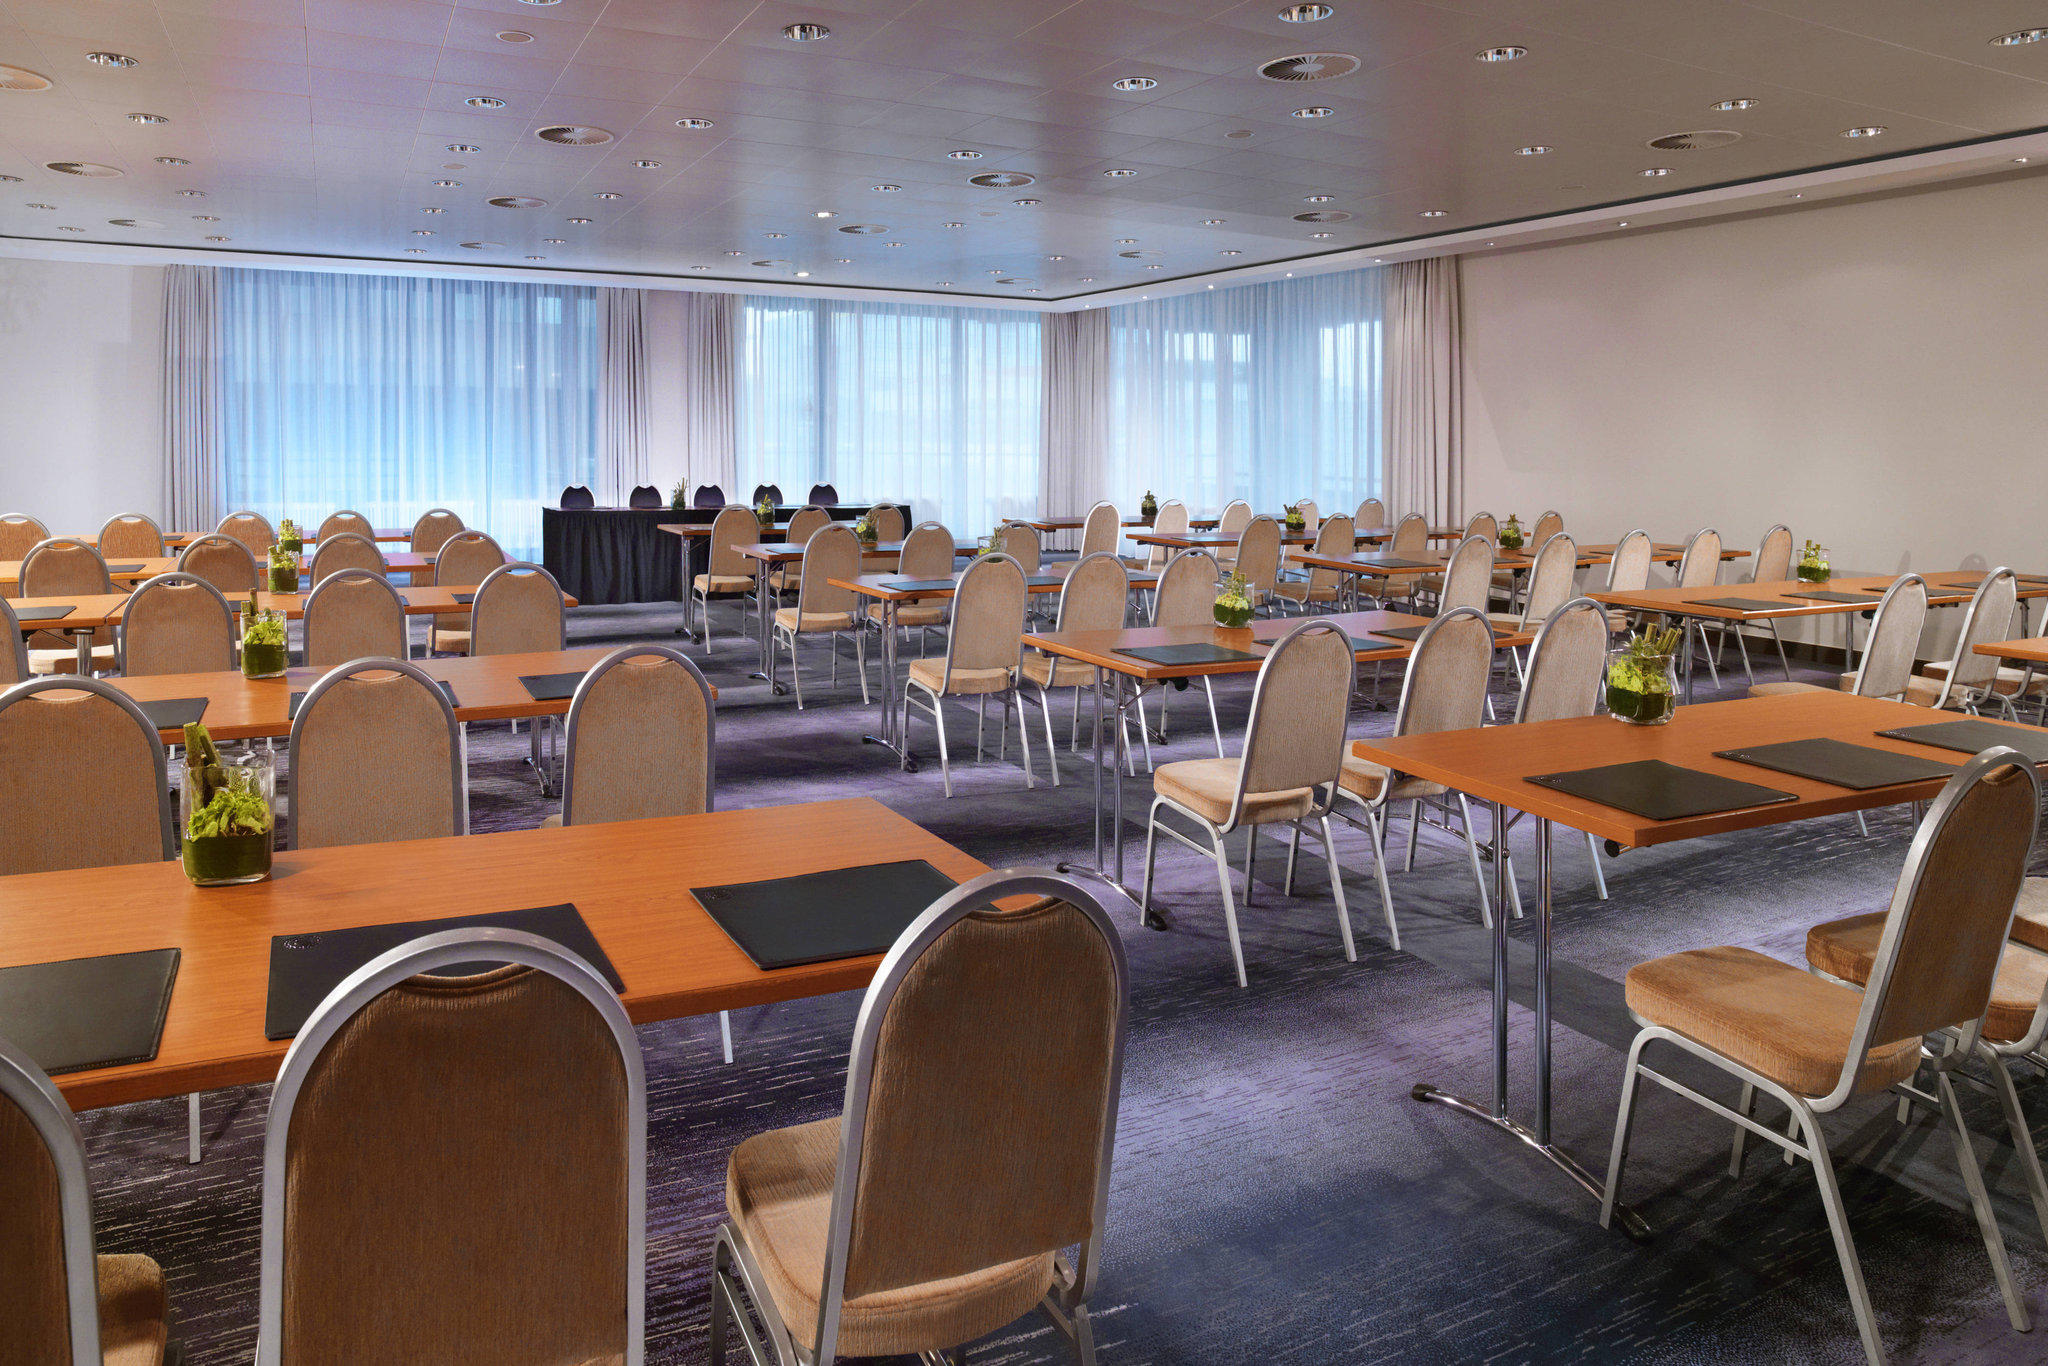 Bilder Sheraton Frankfurt Airport Hotel and Conference Center